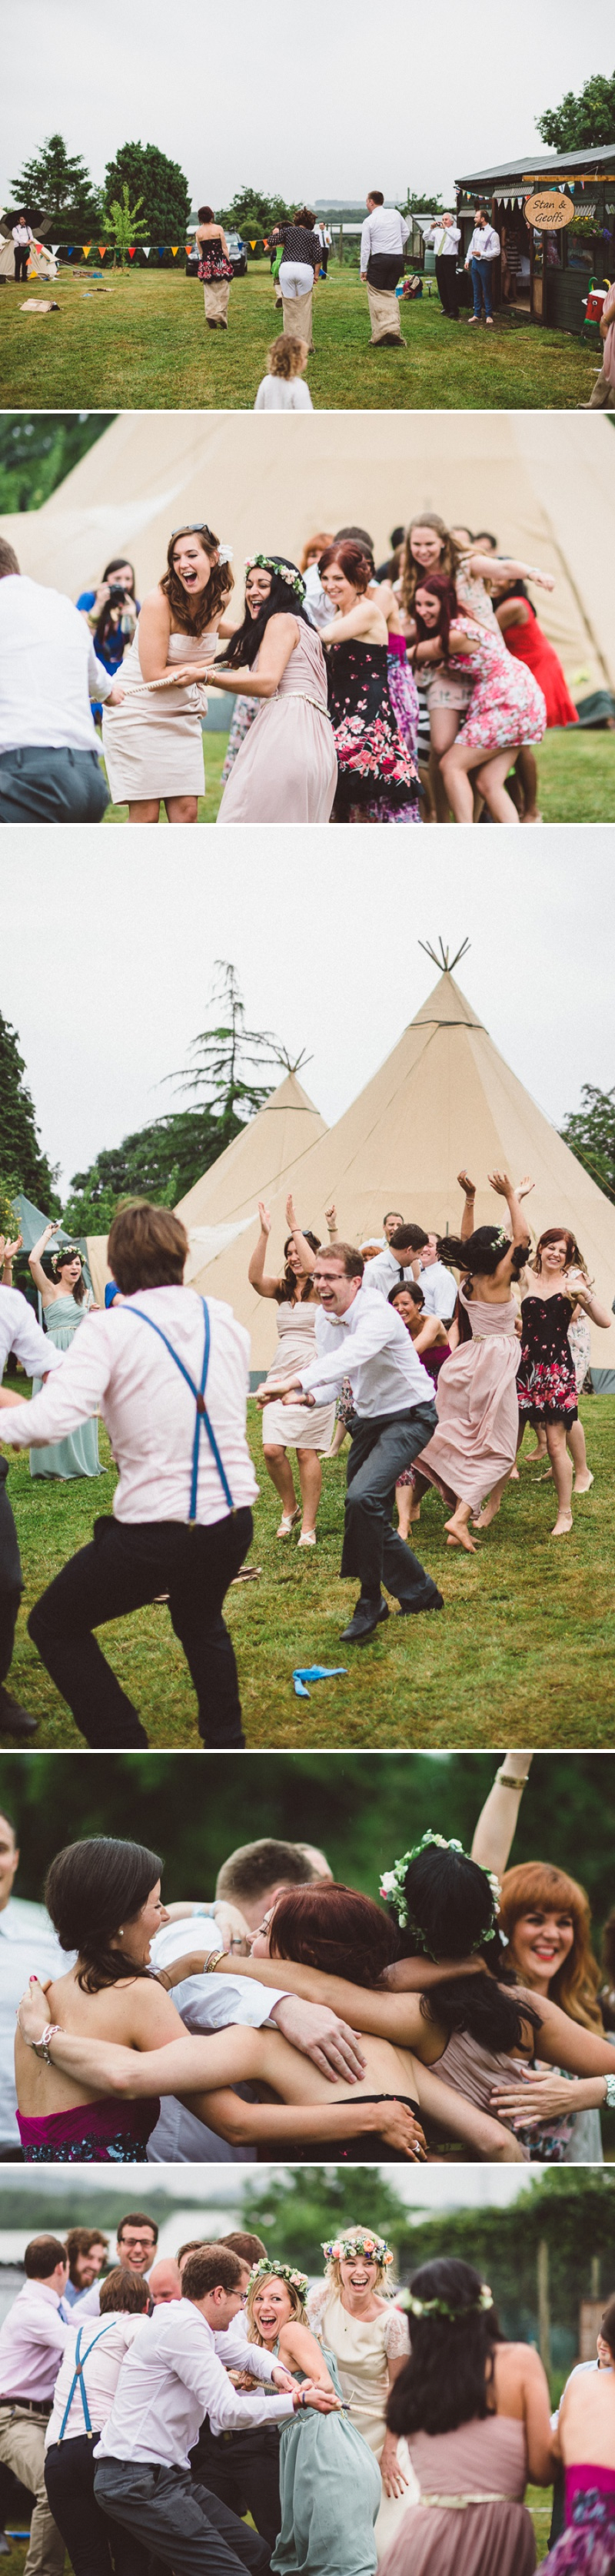 A Beautiful Bohemian Back Garden English Wedding With A Silk Charlie Brear Dress With Lace Cap Sleeves And Flower Crowns From Rhys Parker Photography._0018